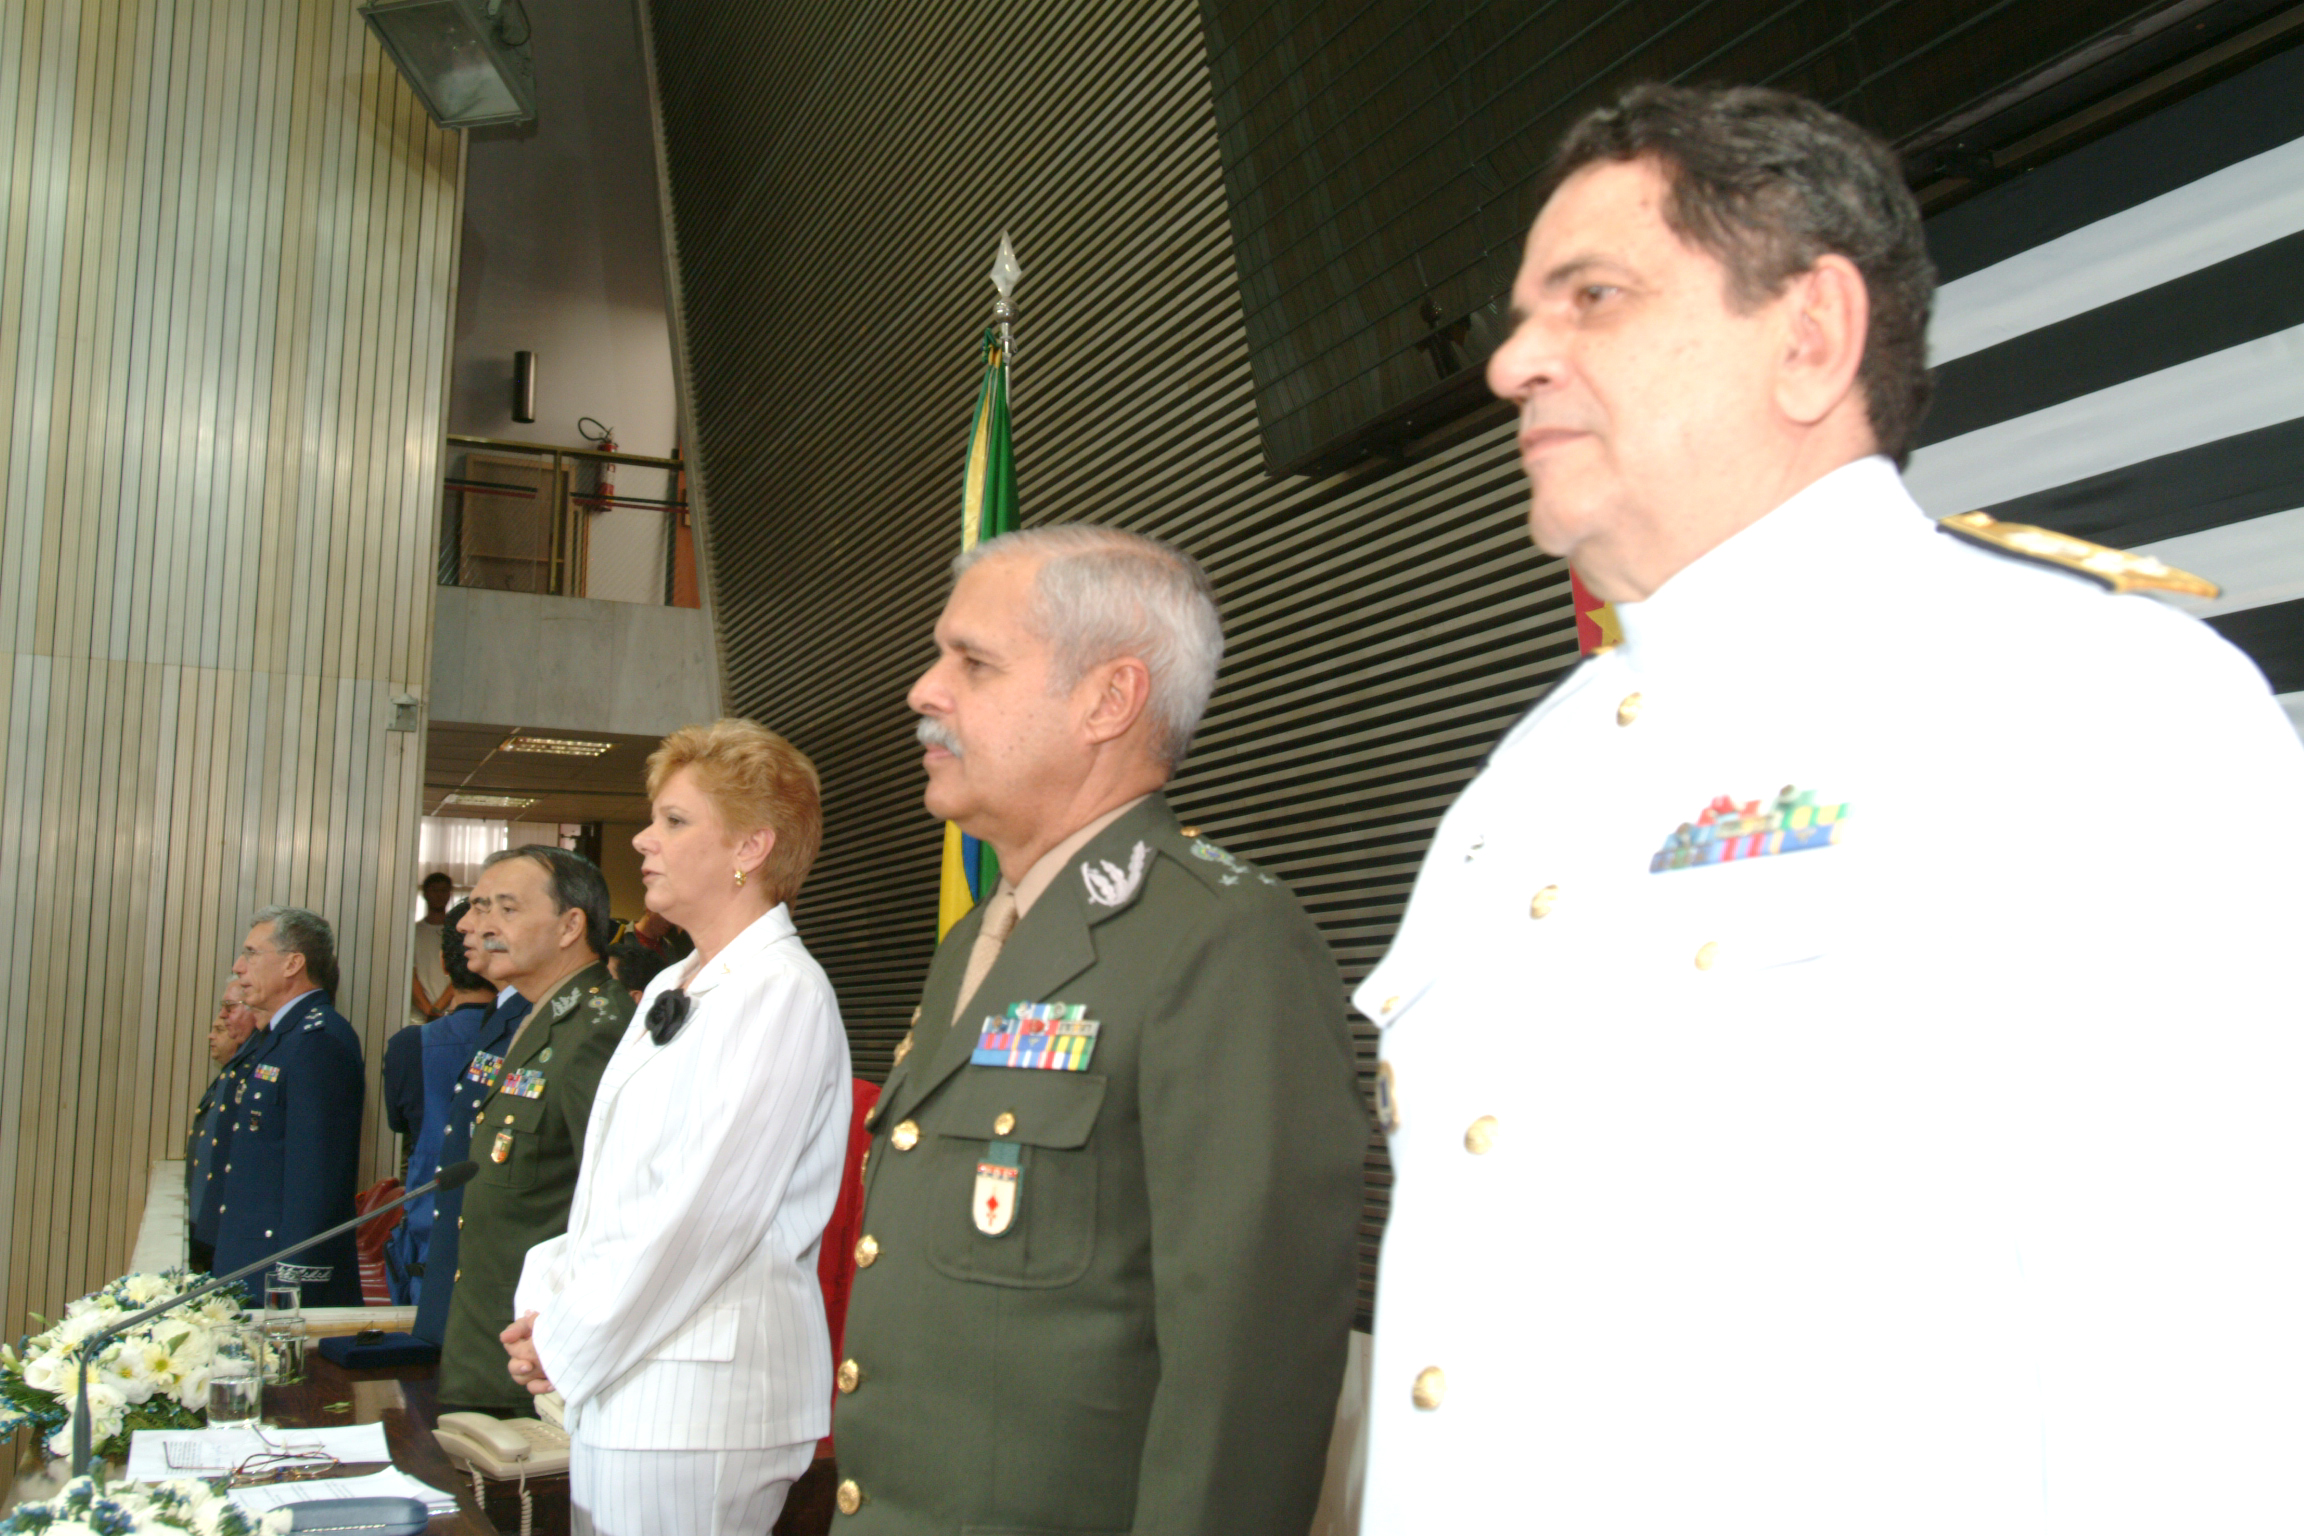 Assembléia Legislativa homenageia o Dia do Aviador<a style='float:right' href='https://www3.al.sp.gov.br/repositorio/noticia/hist/aeronaut3.jpg' target=_blank><img src='/_img/material-file-download-white.png' width='14px' alt='Clique para baixar a imagem'></a>